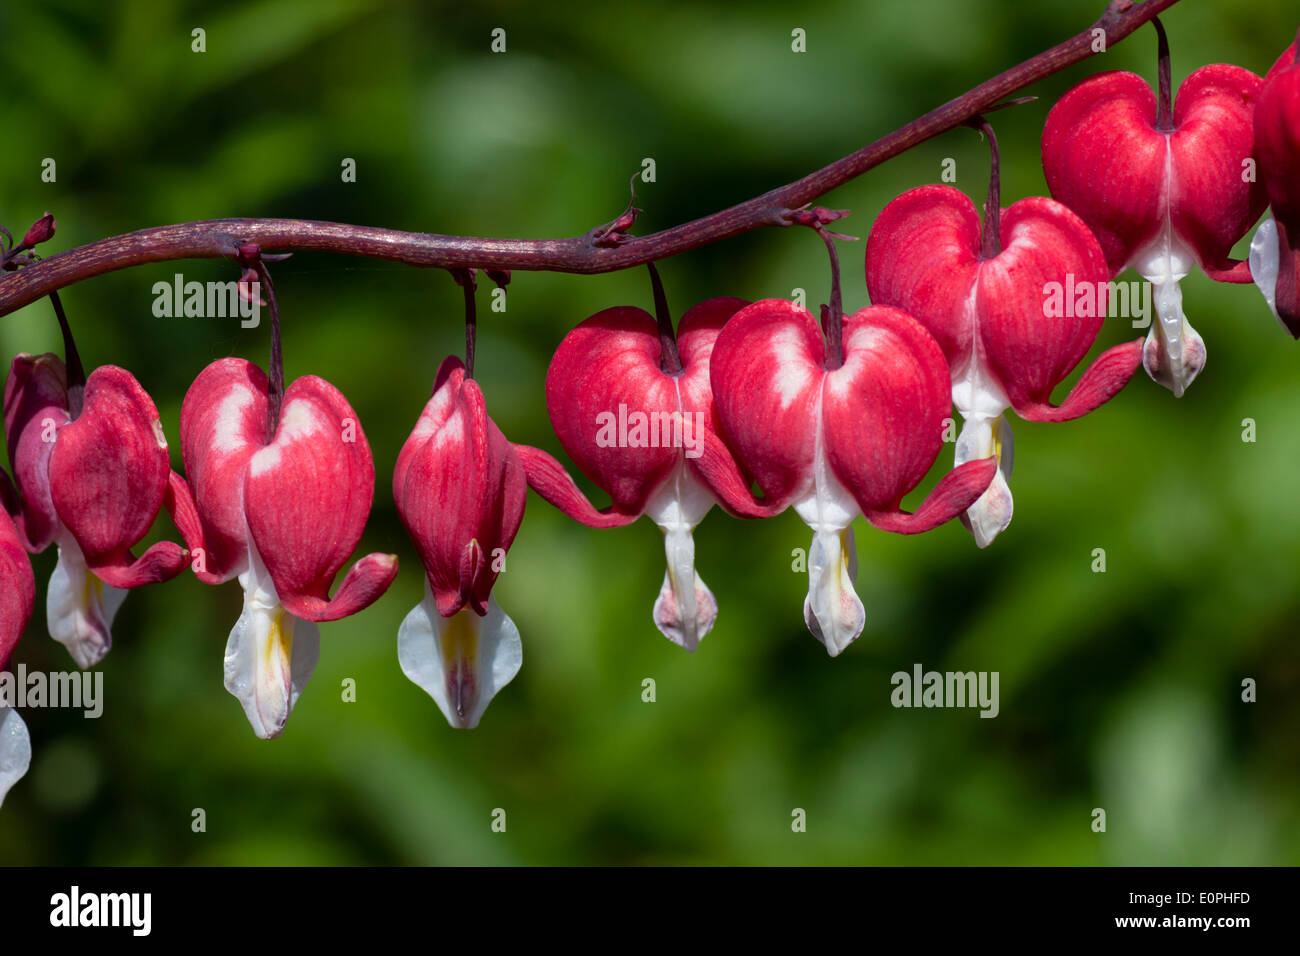 Flowers of the Bleeding Heart, Lamprocapnos (Dicentra) spectabilis 'Valentine's Day' - Stock Image